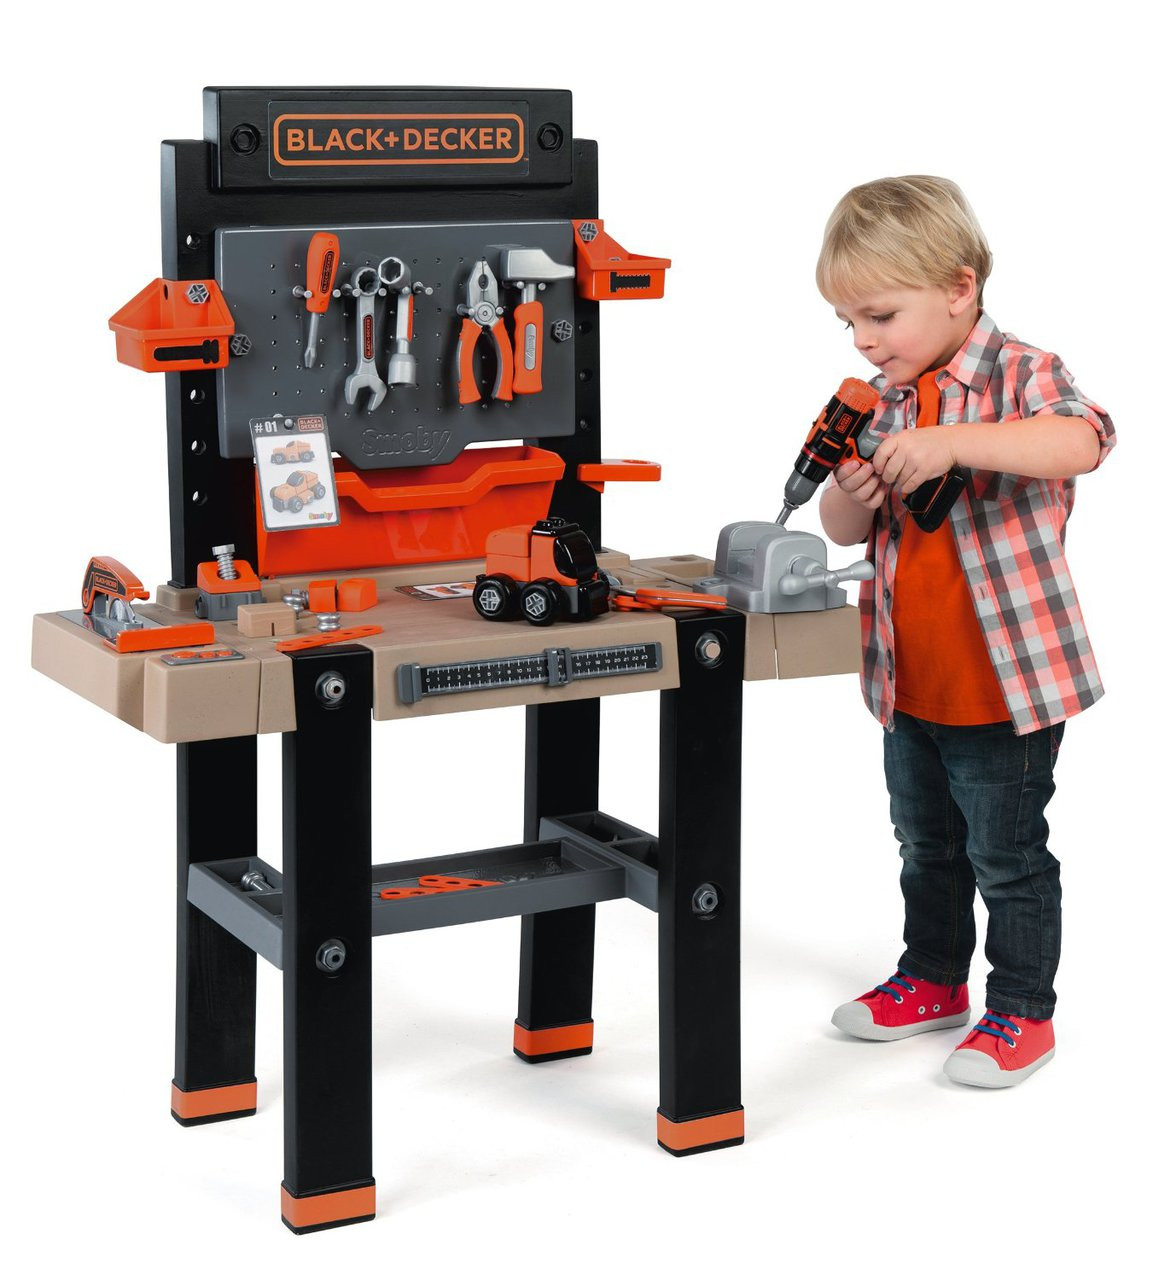 smoby black and decker ultimate bricolo childrens play workbench toy tool set ebay. Black Bedroom Furniture Sets. Home Design Ideas